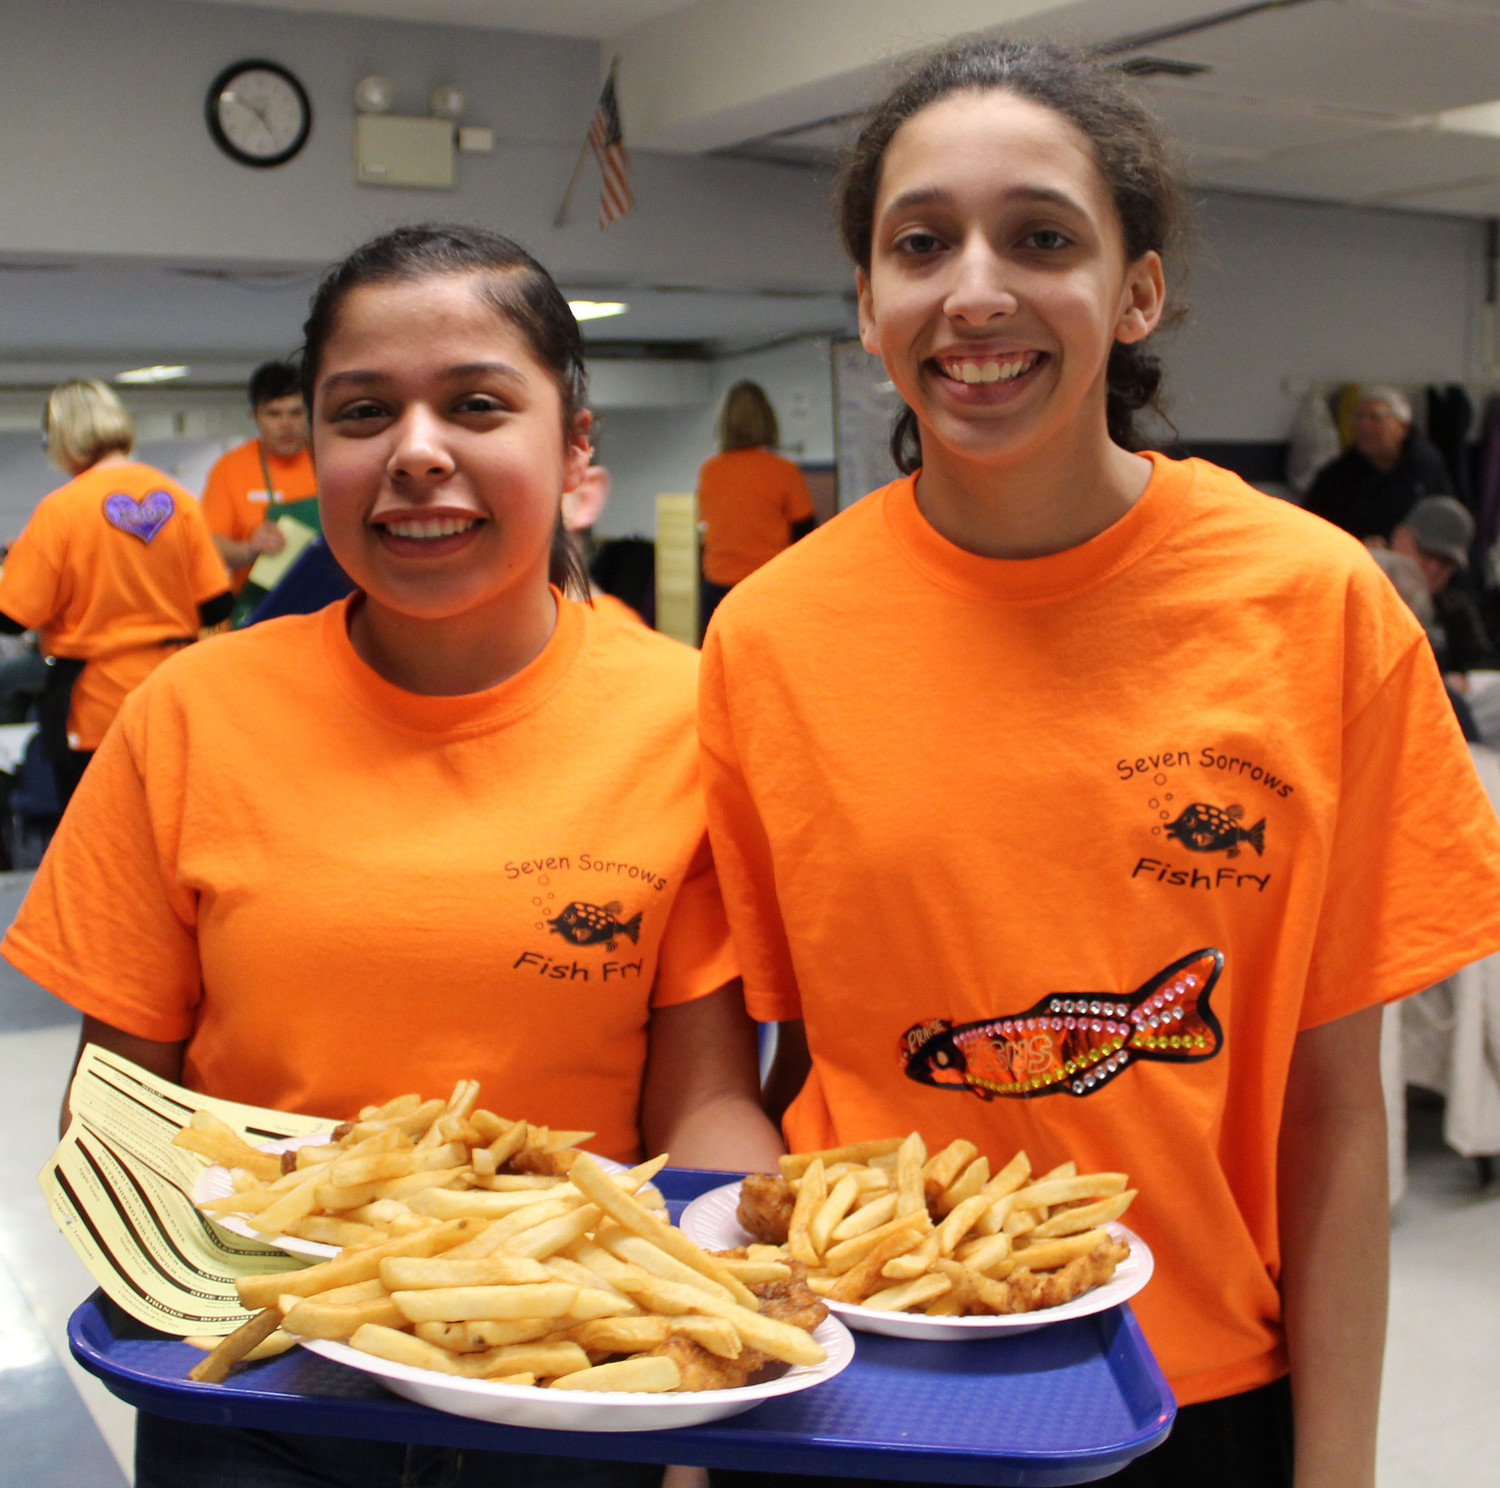 Volunteers like Veronica Martin and Erin Hess-Moore were busy running orders during Seven Sorrows' fish fry March 2.